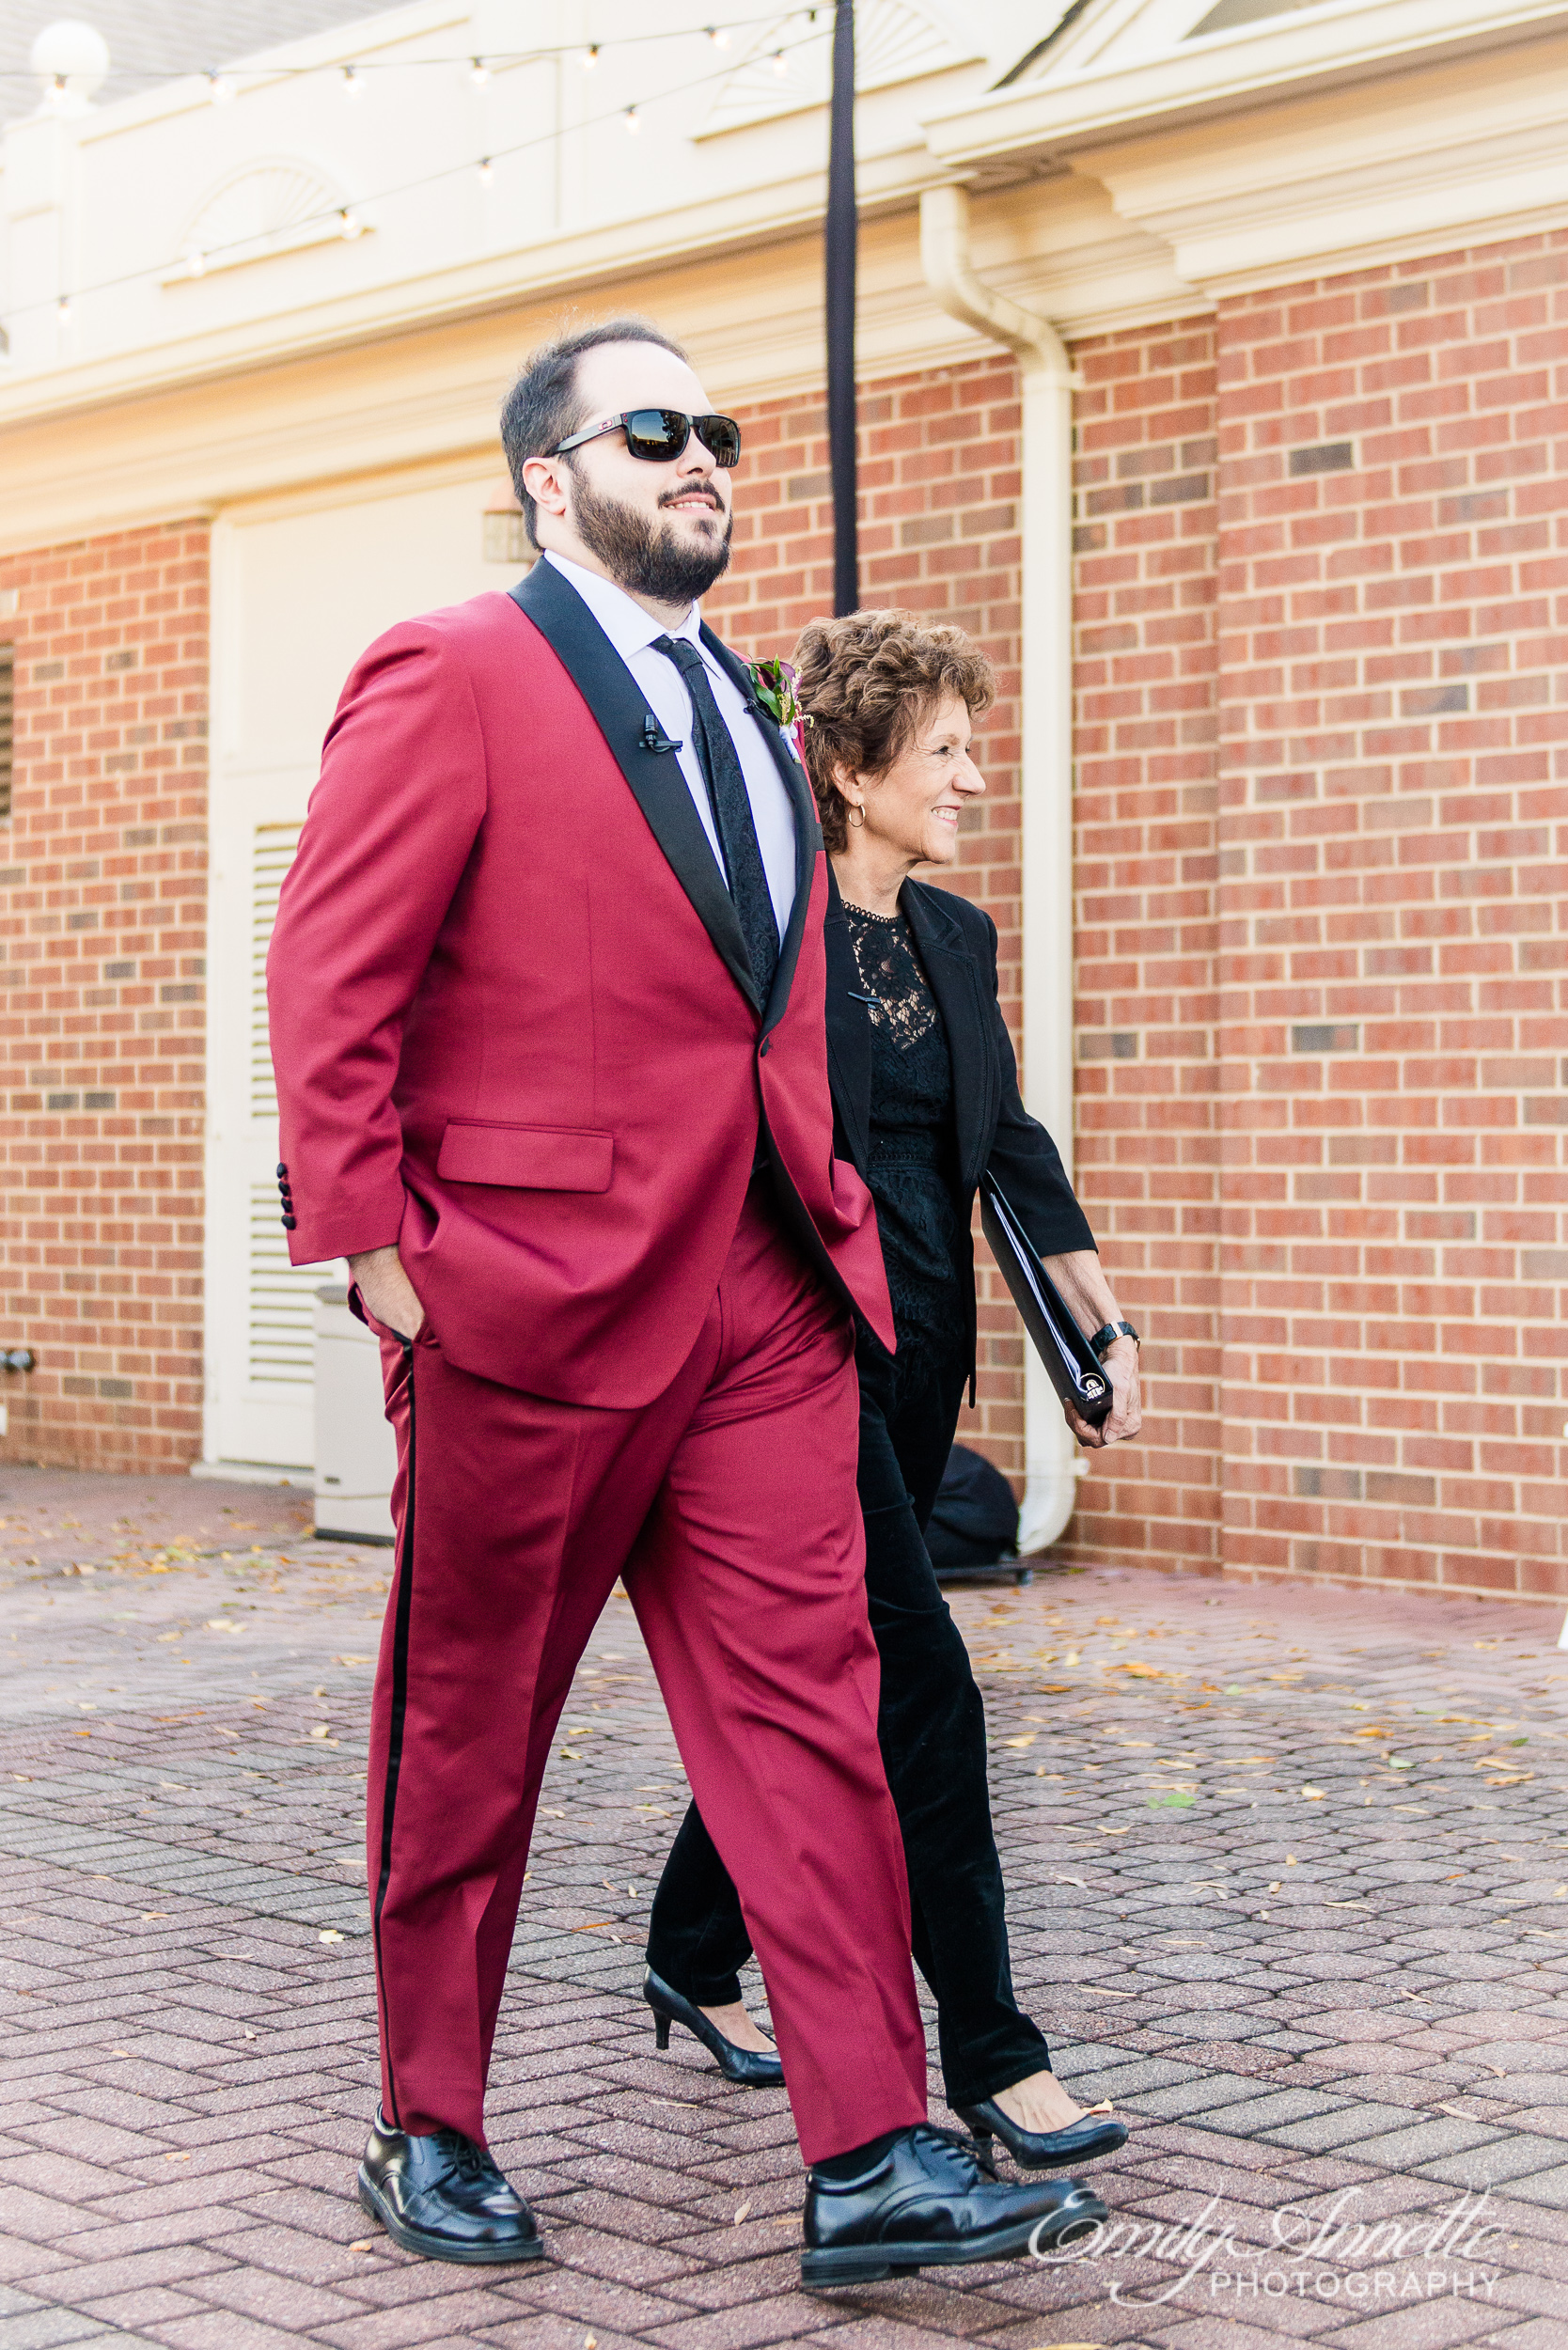 A groom in a red suit and sunglasses and the officiant walking into the wedding ceremony at Willow Oaks Country Club in Richmond, Virginia